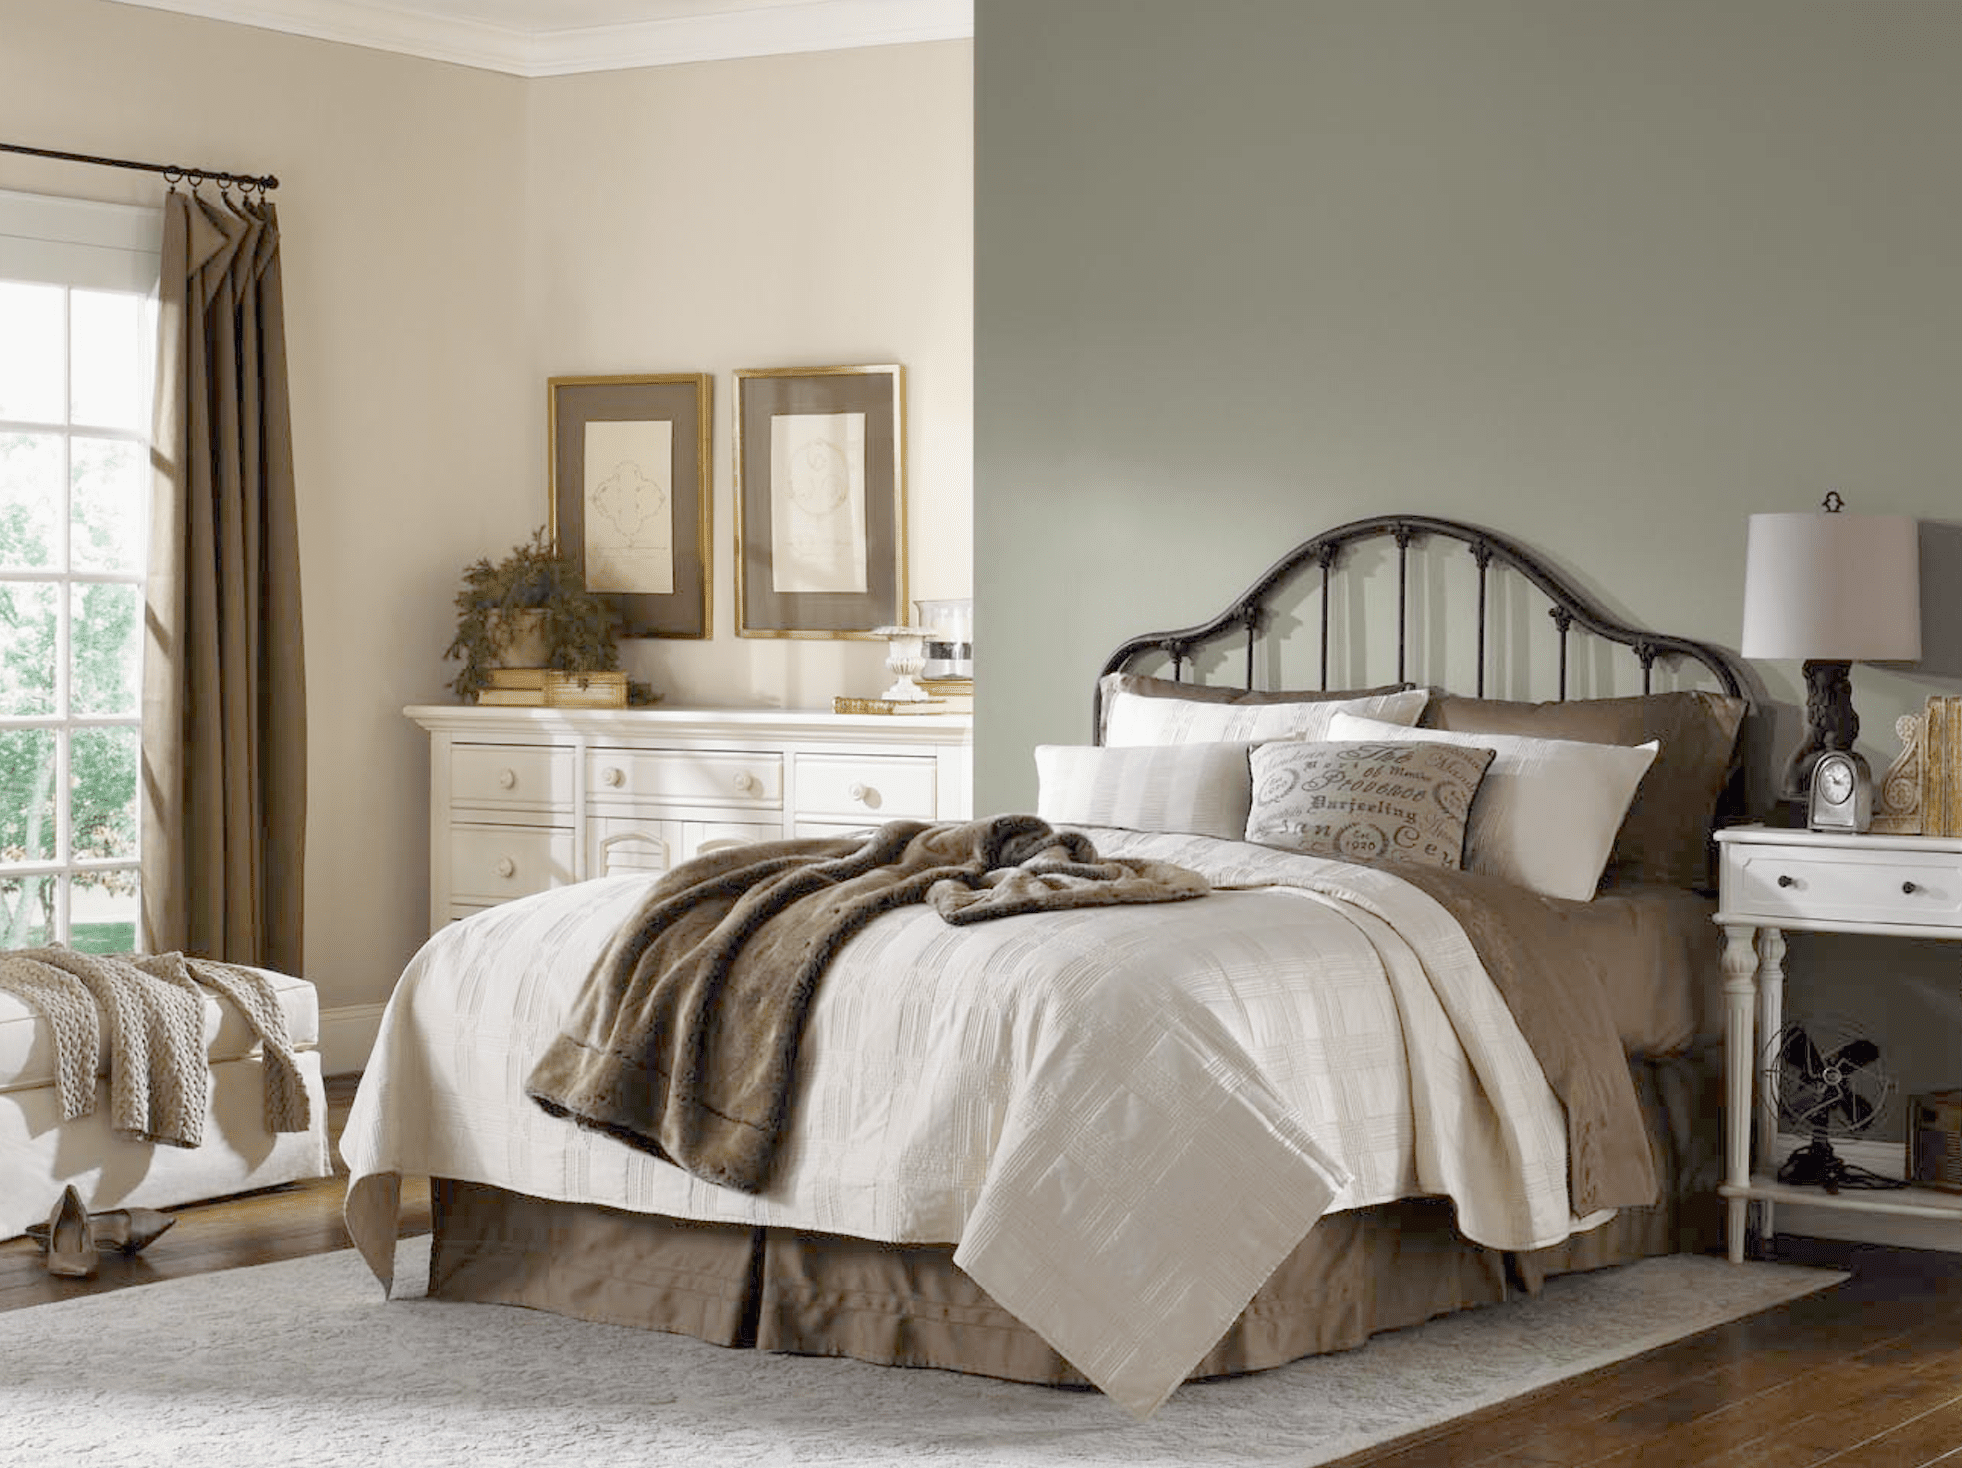 8 relaxing sherwin williams paint colors for bedrooms - Bedroom wall paint colors ...